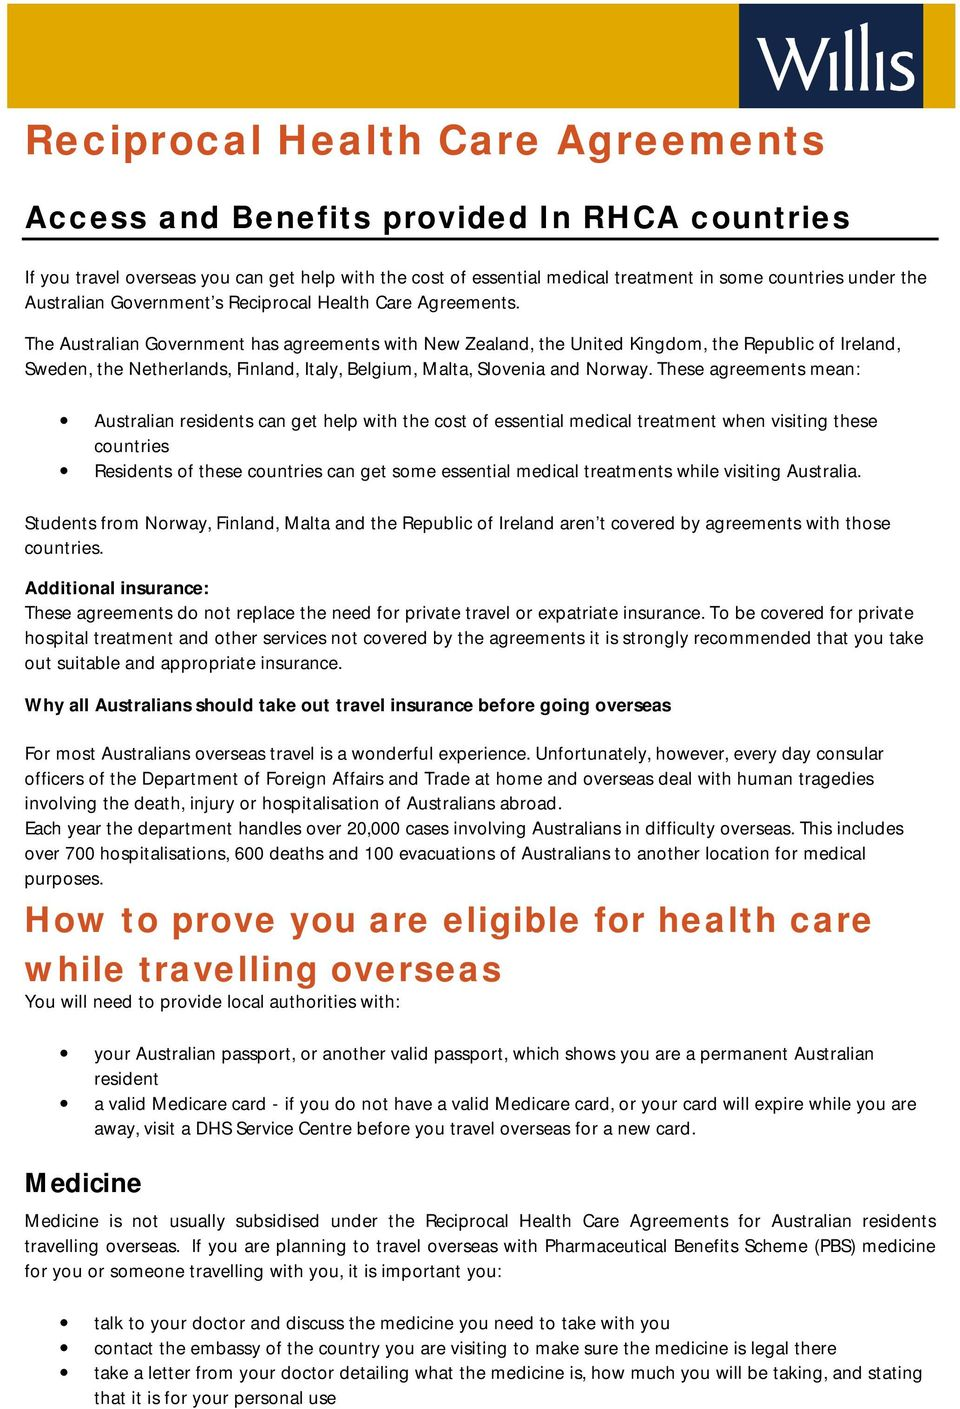 Card Application Form Download File Medicare The Australian Government Has  Agreements With New Zealand, The